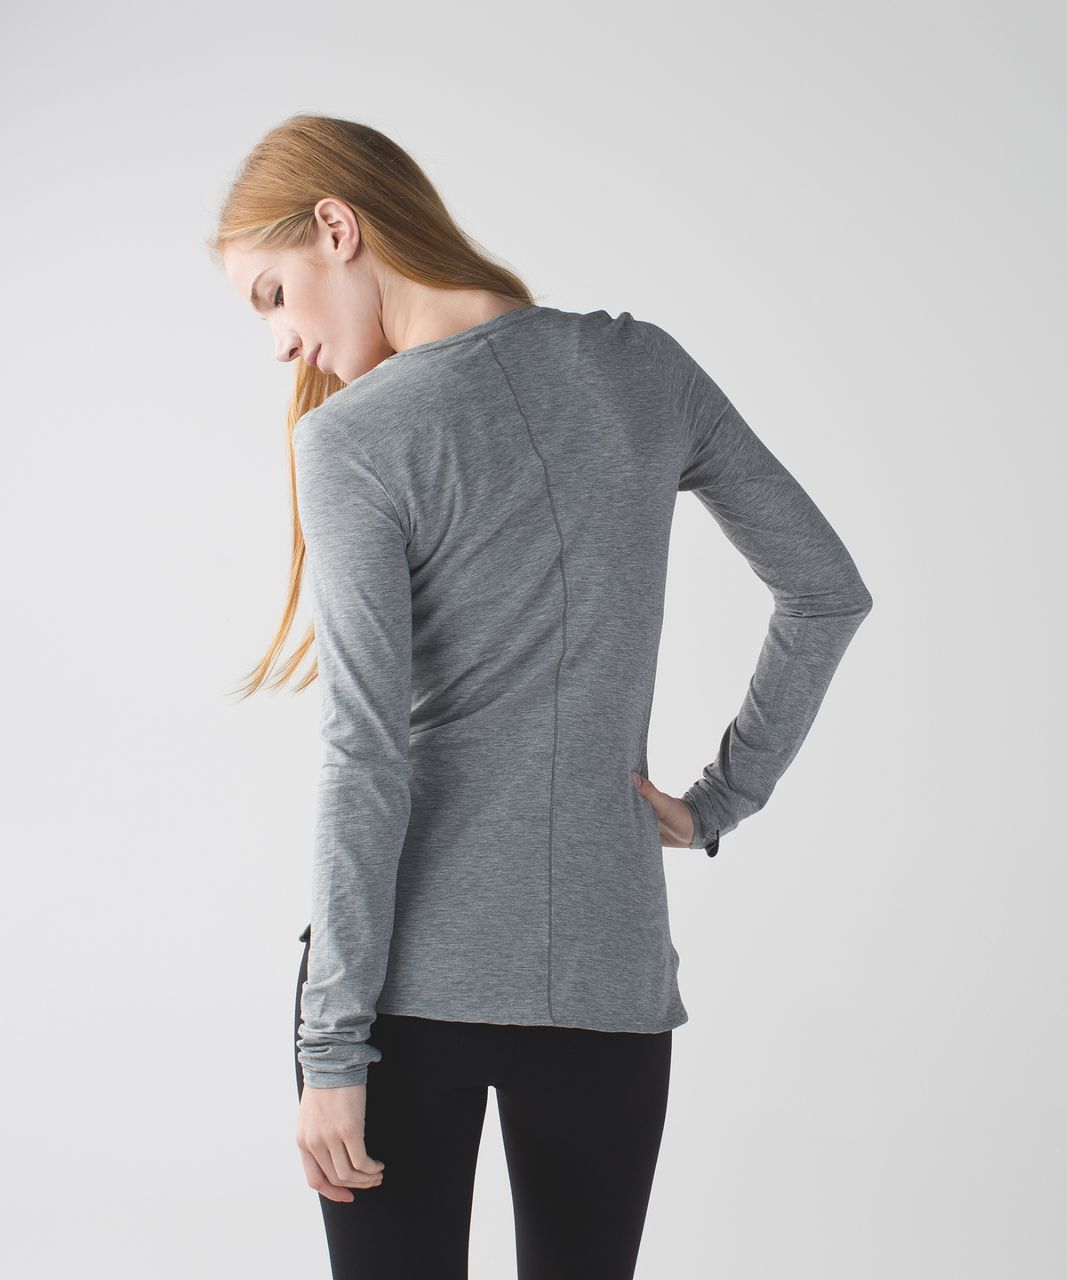 Lululemon Circadian Long Sleeve V Neck Tee - Heathered Medium Grey